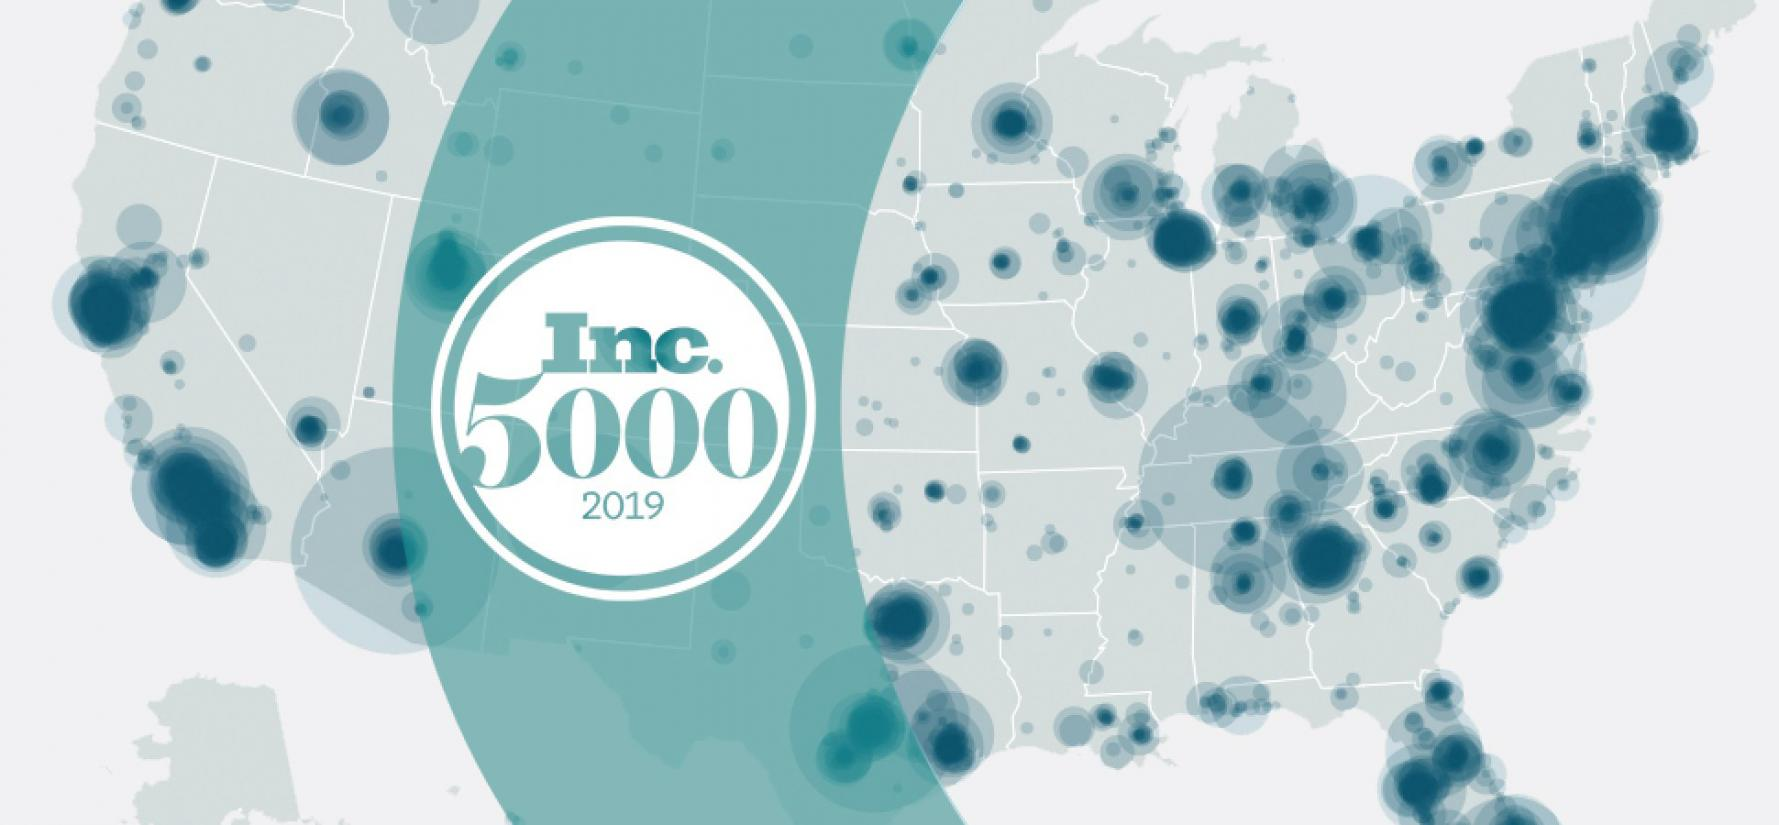 Concierge Auctions made the Inc. 5000 list for the sixth consecutive year.